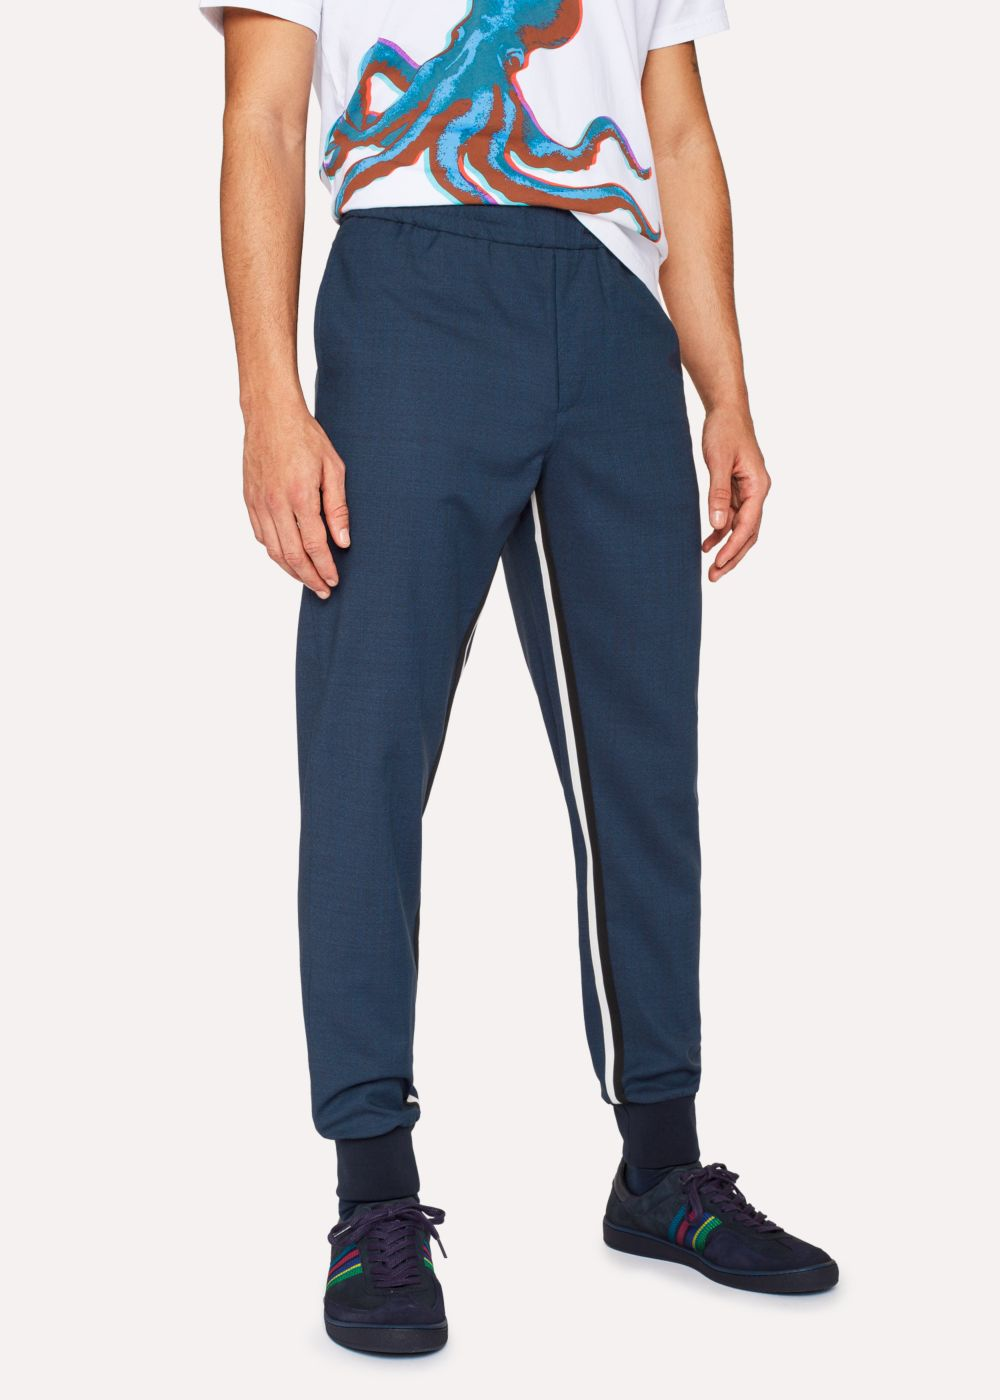 Paul Smith Men's Indigo Wool-Blend Trousers With Stripe Detail